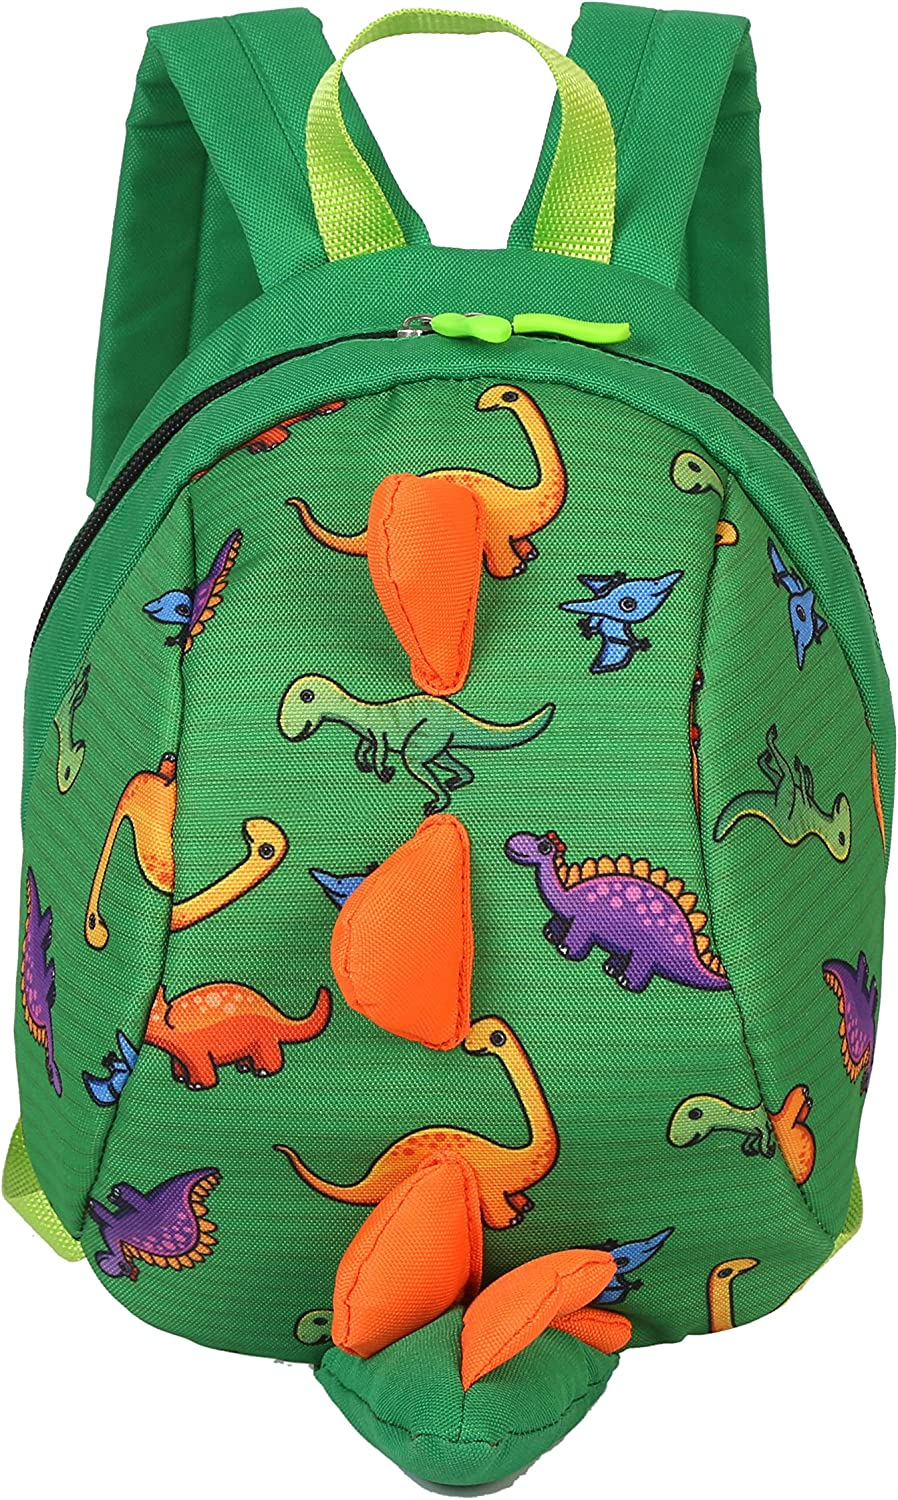 Toddler kids Dinosaur Backpack Book Bags with Safety Leash for Boys Girls